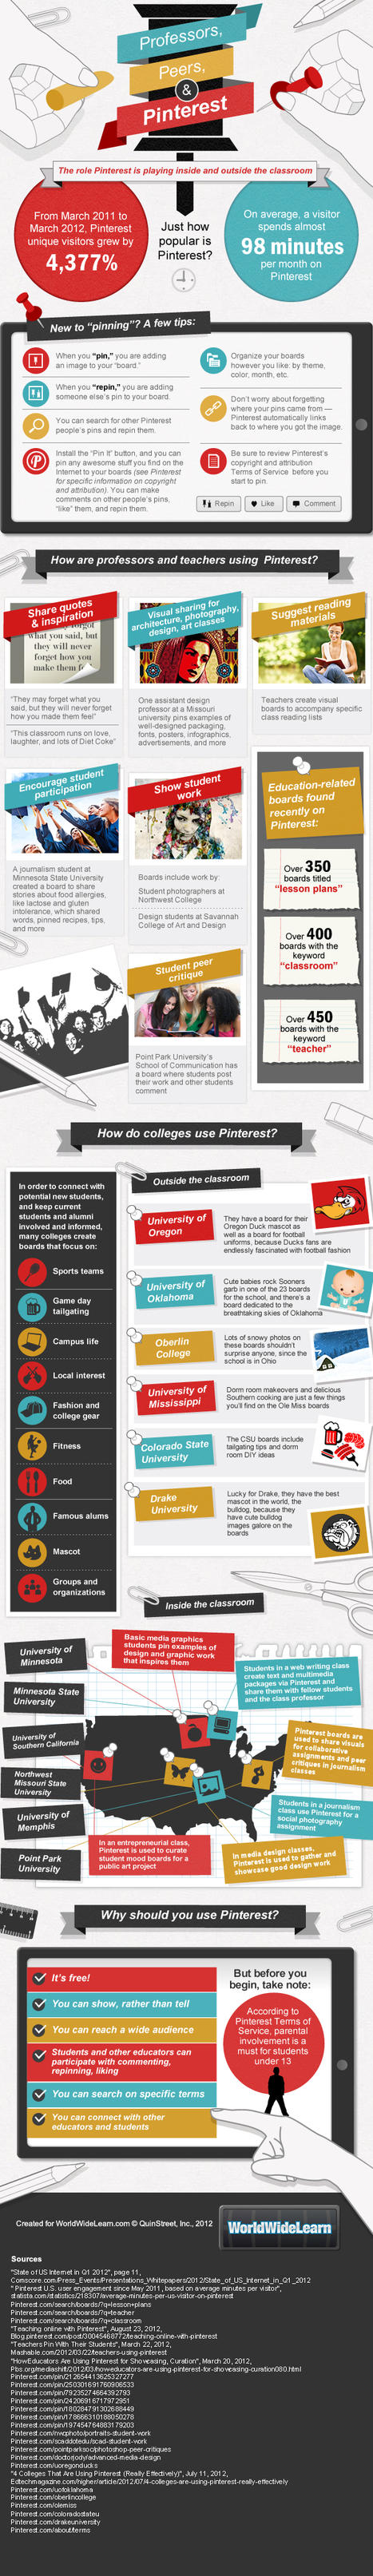 A Straightforward Guide To Using Pinterest In Education [Infographic] | Affordable Learning | Scoop.it